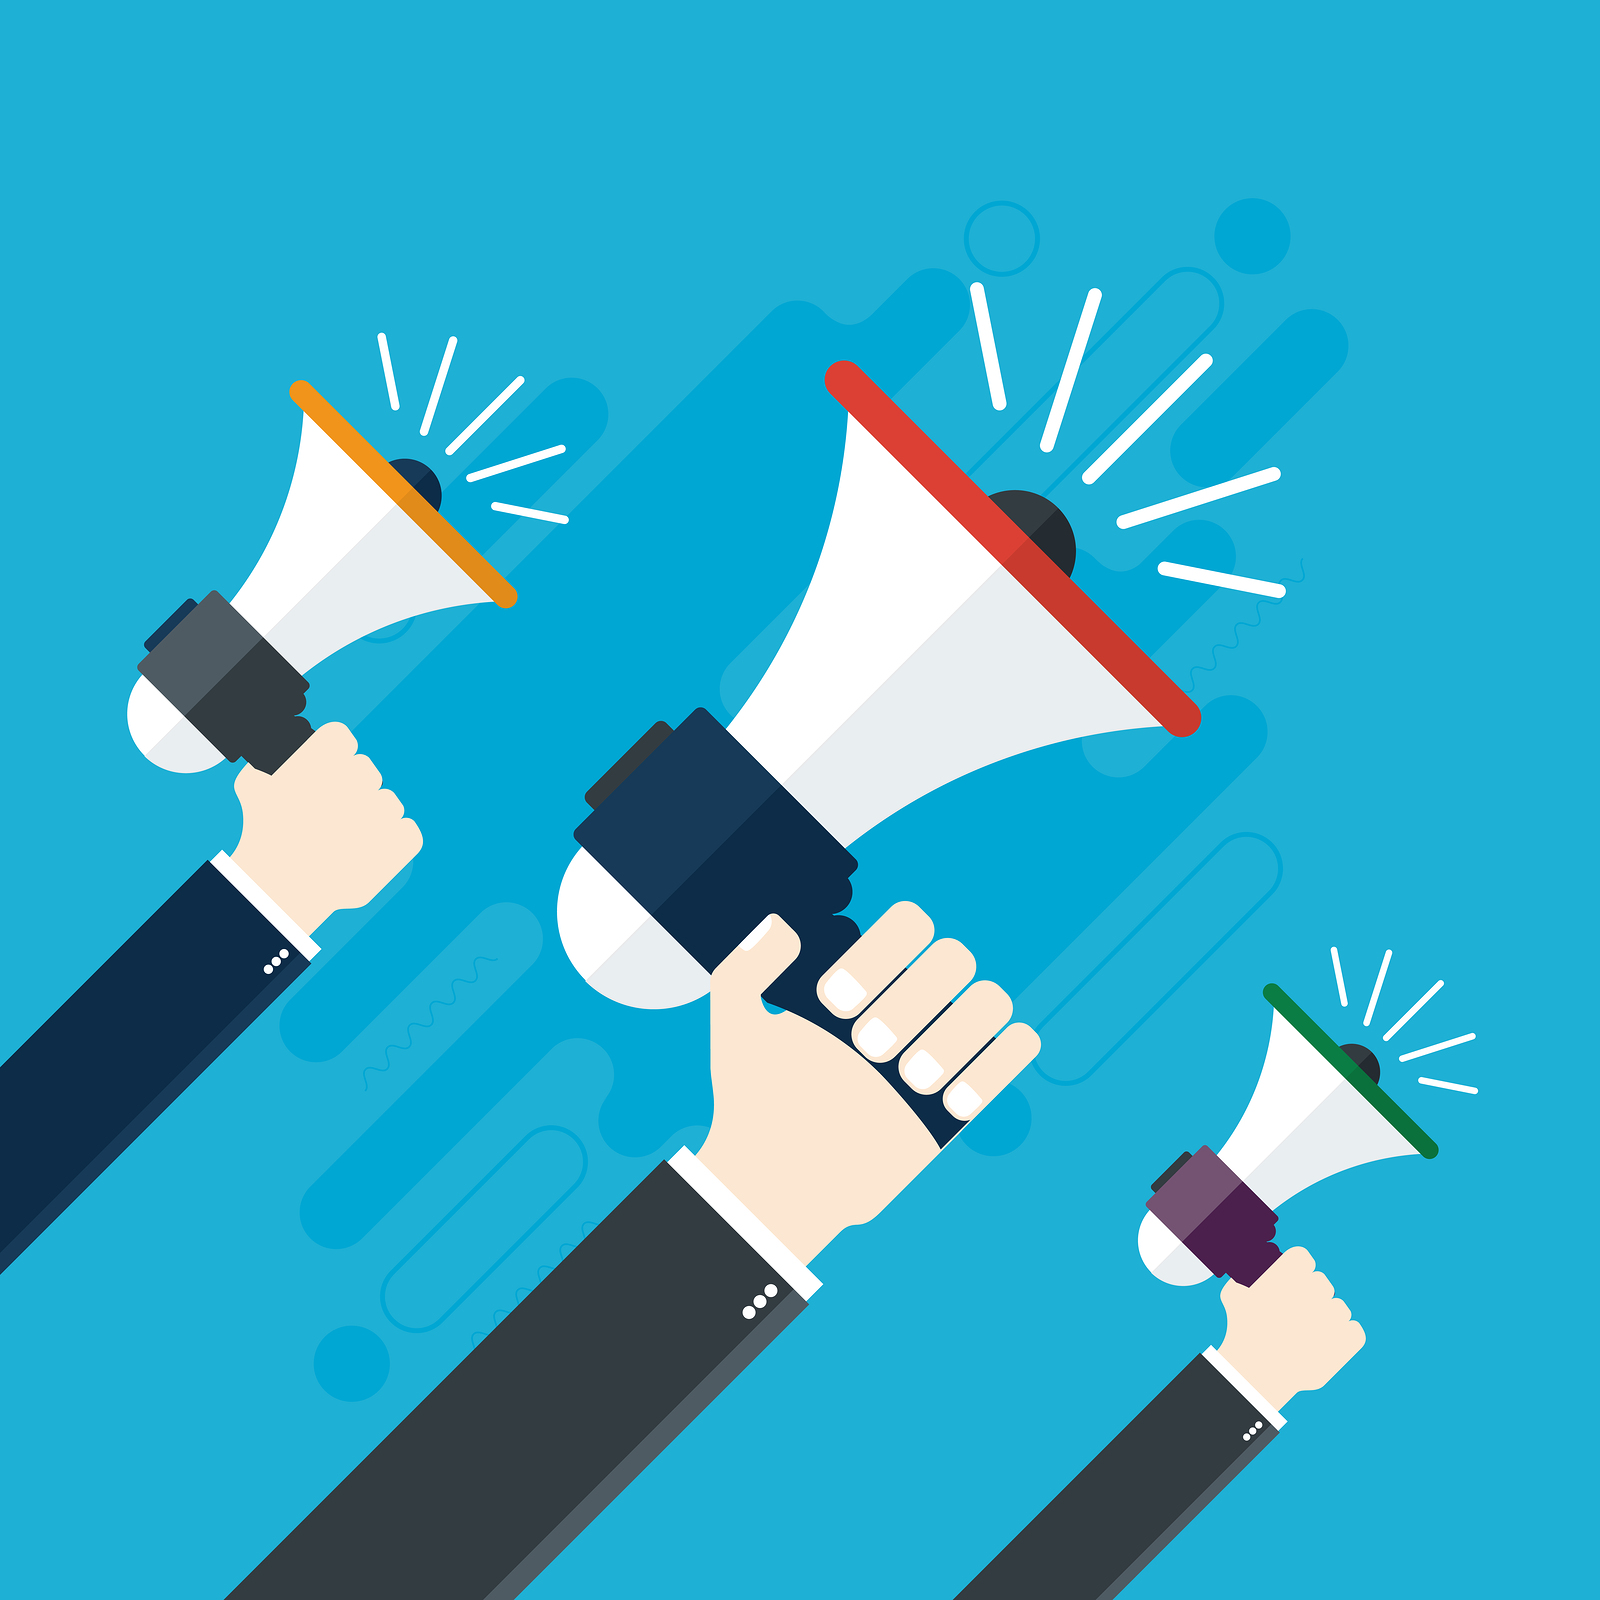 call to action clip art of people holding megaphones